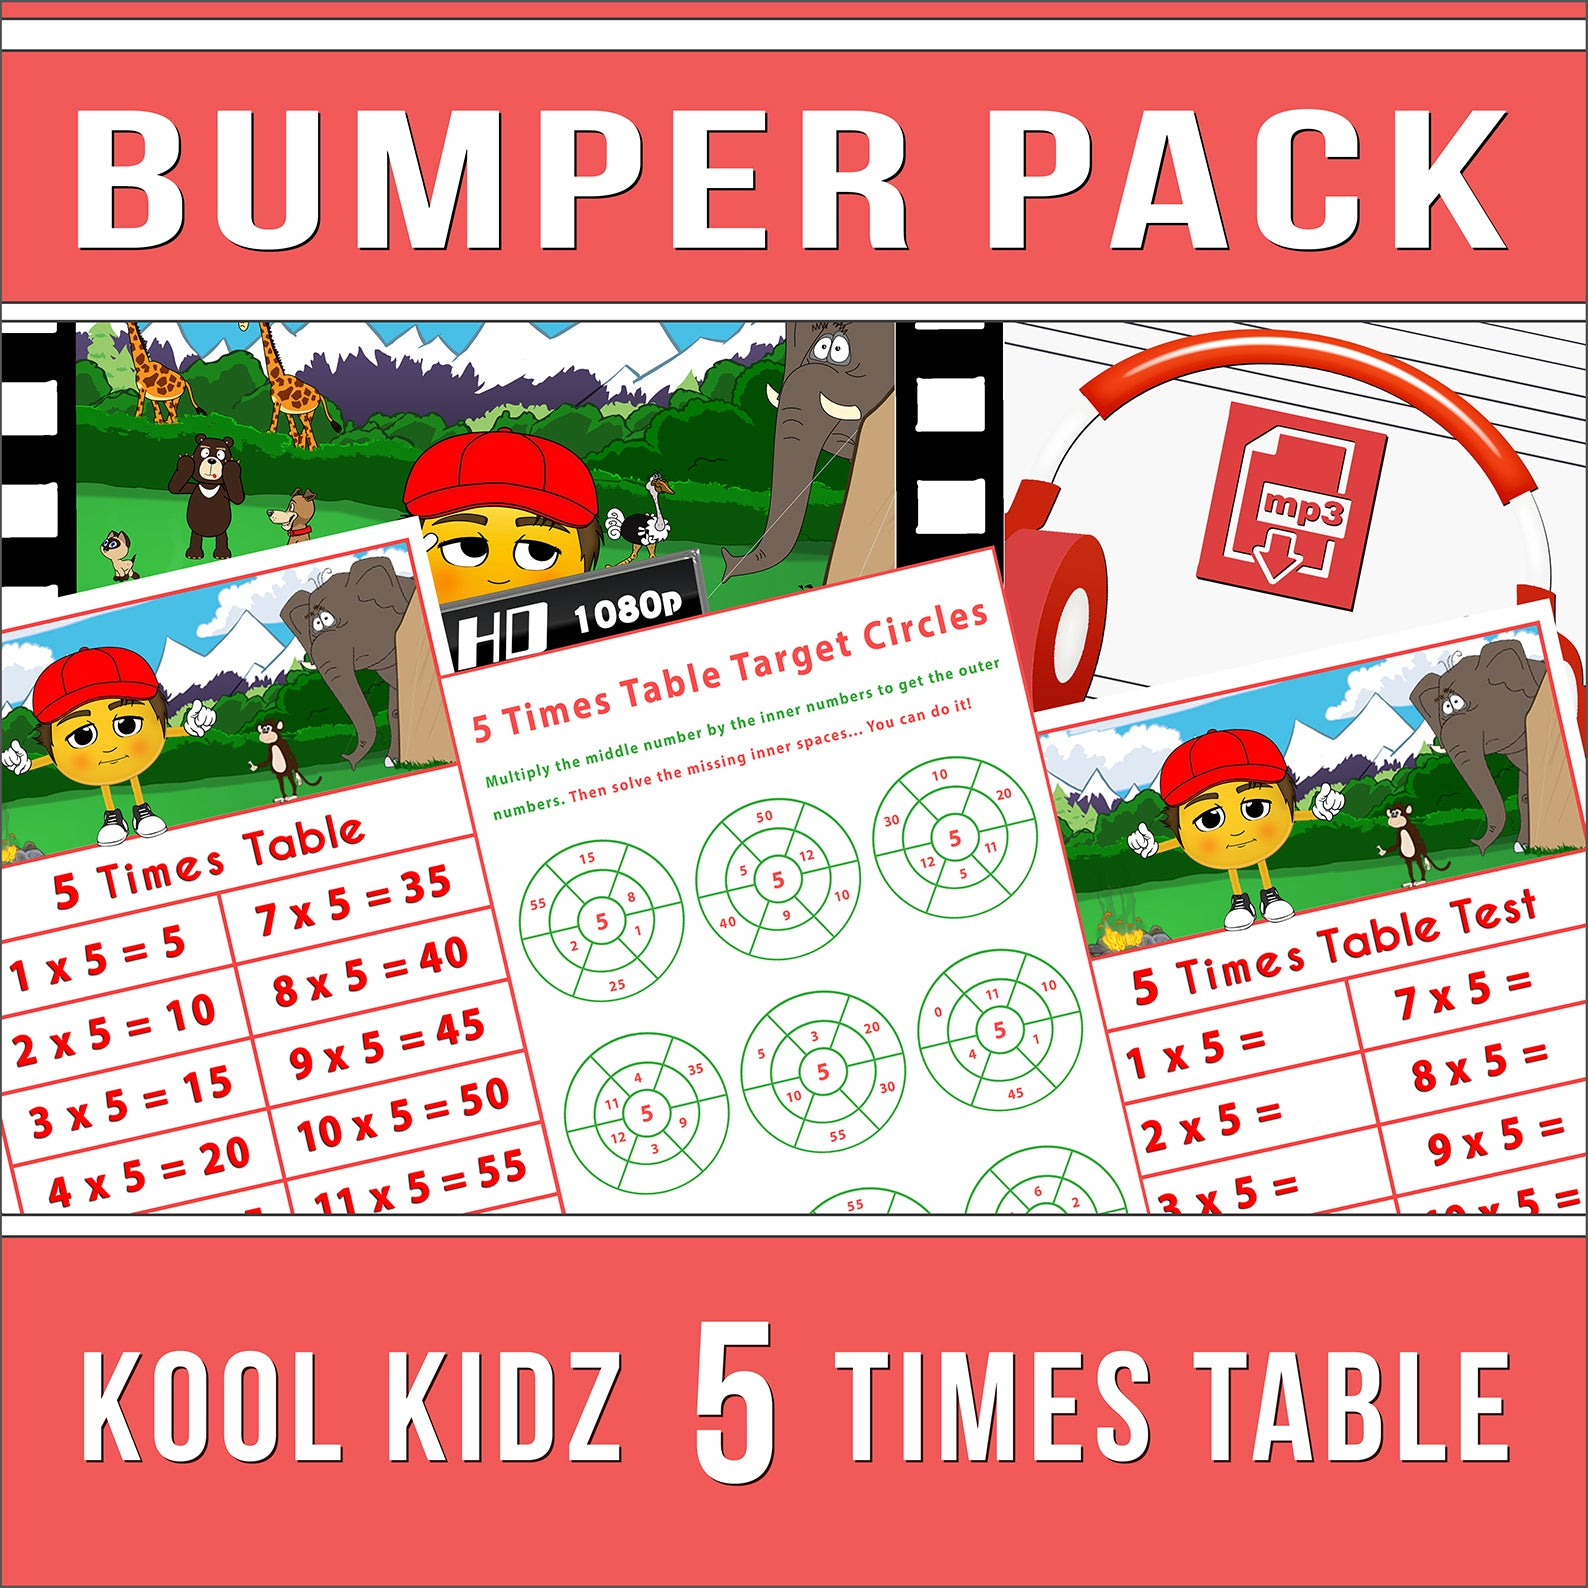 5 Times Table Bumper-Pack